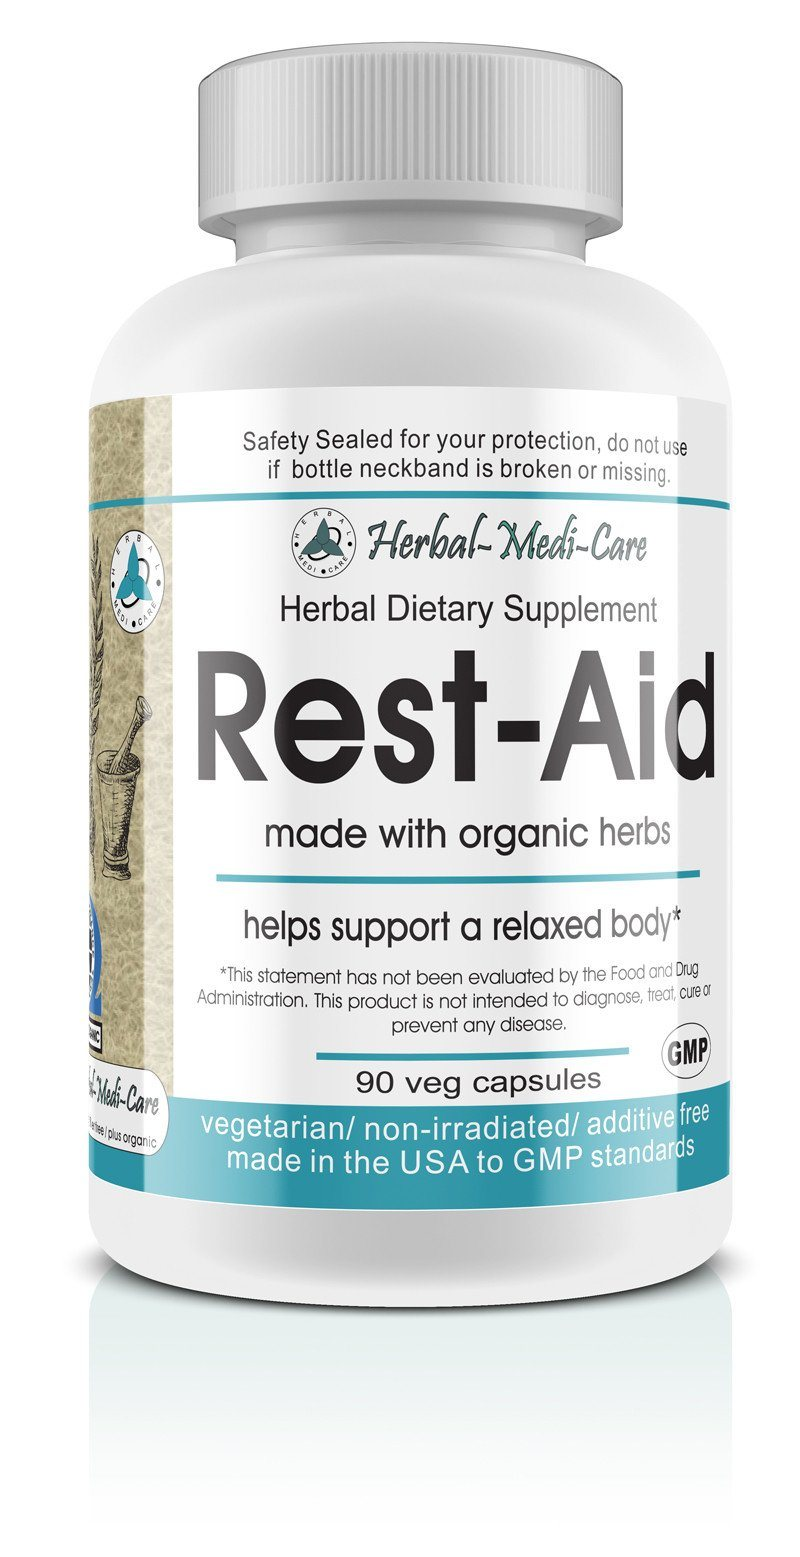 Herbal-Medi-Care Whole Food Rest-Aid (Stress & Sleep) Vegetarian Capsules; 90-Count, Made with Organic - Herbal-Medi-Care Whole Food Rest-Aid (Stress & Sleep) Vegetarian Capsules; 90-Count, Made with Organic - Herbal-Medi-Care Whole Food Rest-Aid (Stress & Sleep) Vegetarian Capsules; 90-Count, Made with Organic